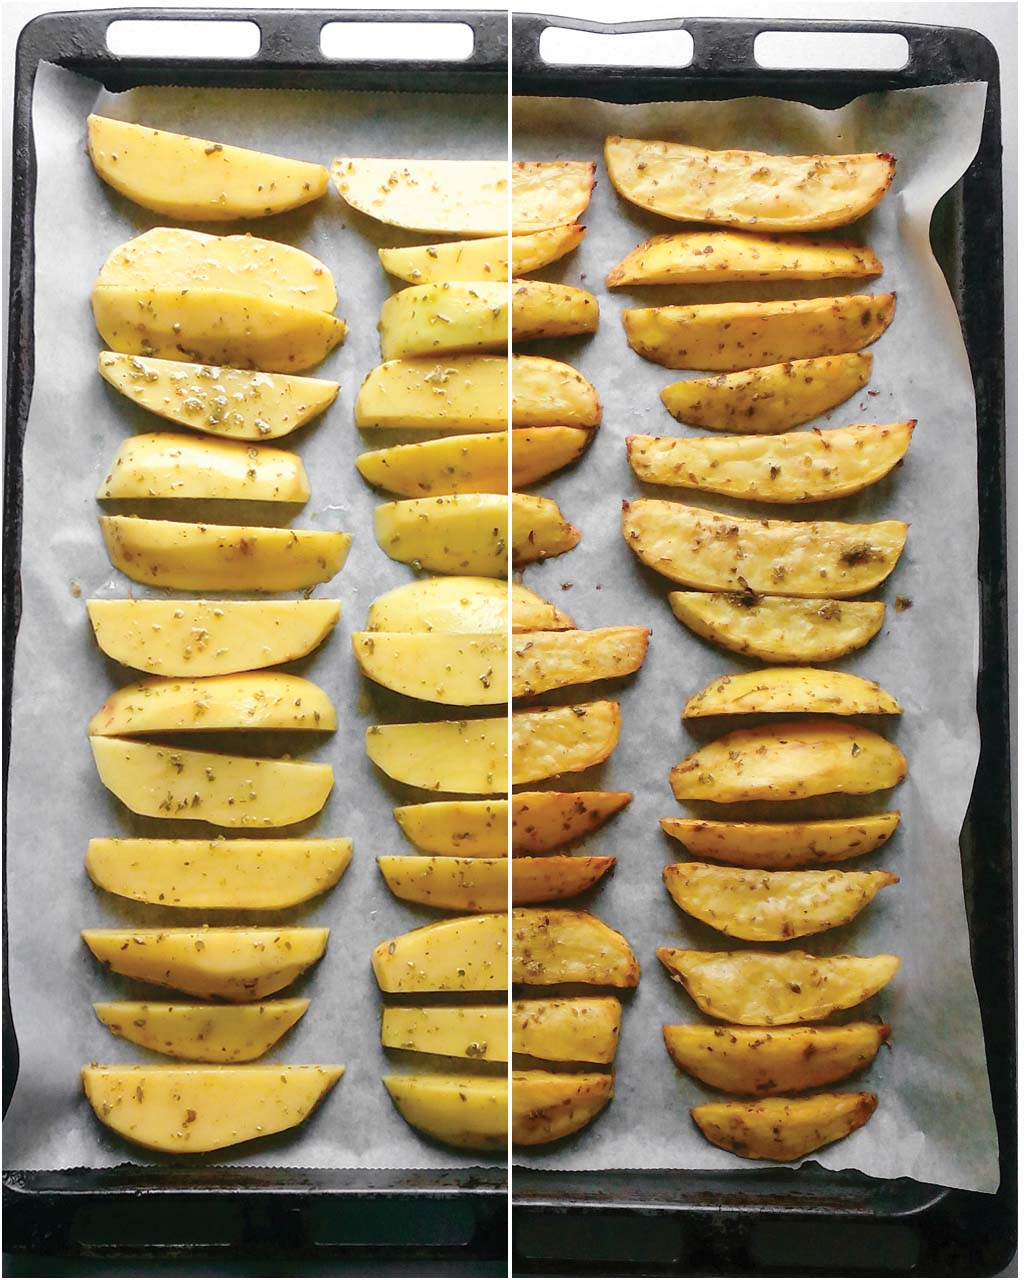 Easy Baked Potato Fries – this is a foolproof recipe that will give you PERFECT oven potato fries every single time. All you need is potatoes, a little bit of oil and your favorite seasonings. The rest is up to an oven!   #bakedpotatofries #frenchfries #bakedfrenchfries #ovenbakedfries   simplyanchy.com